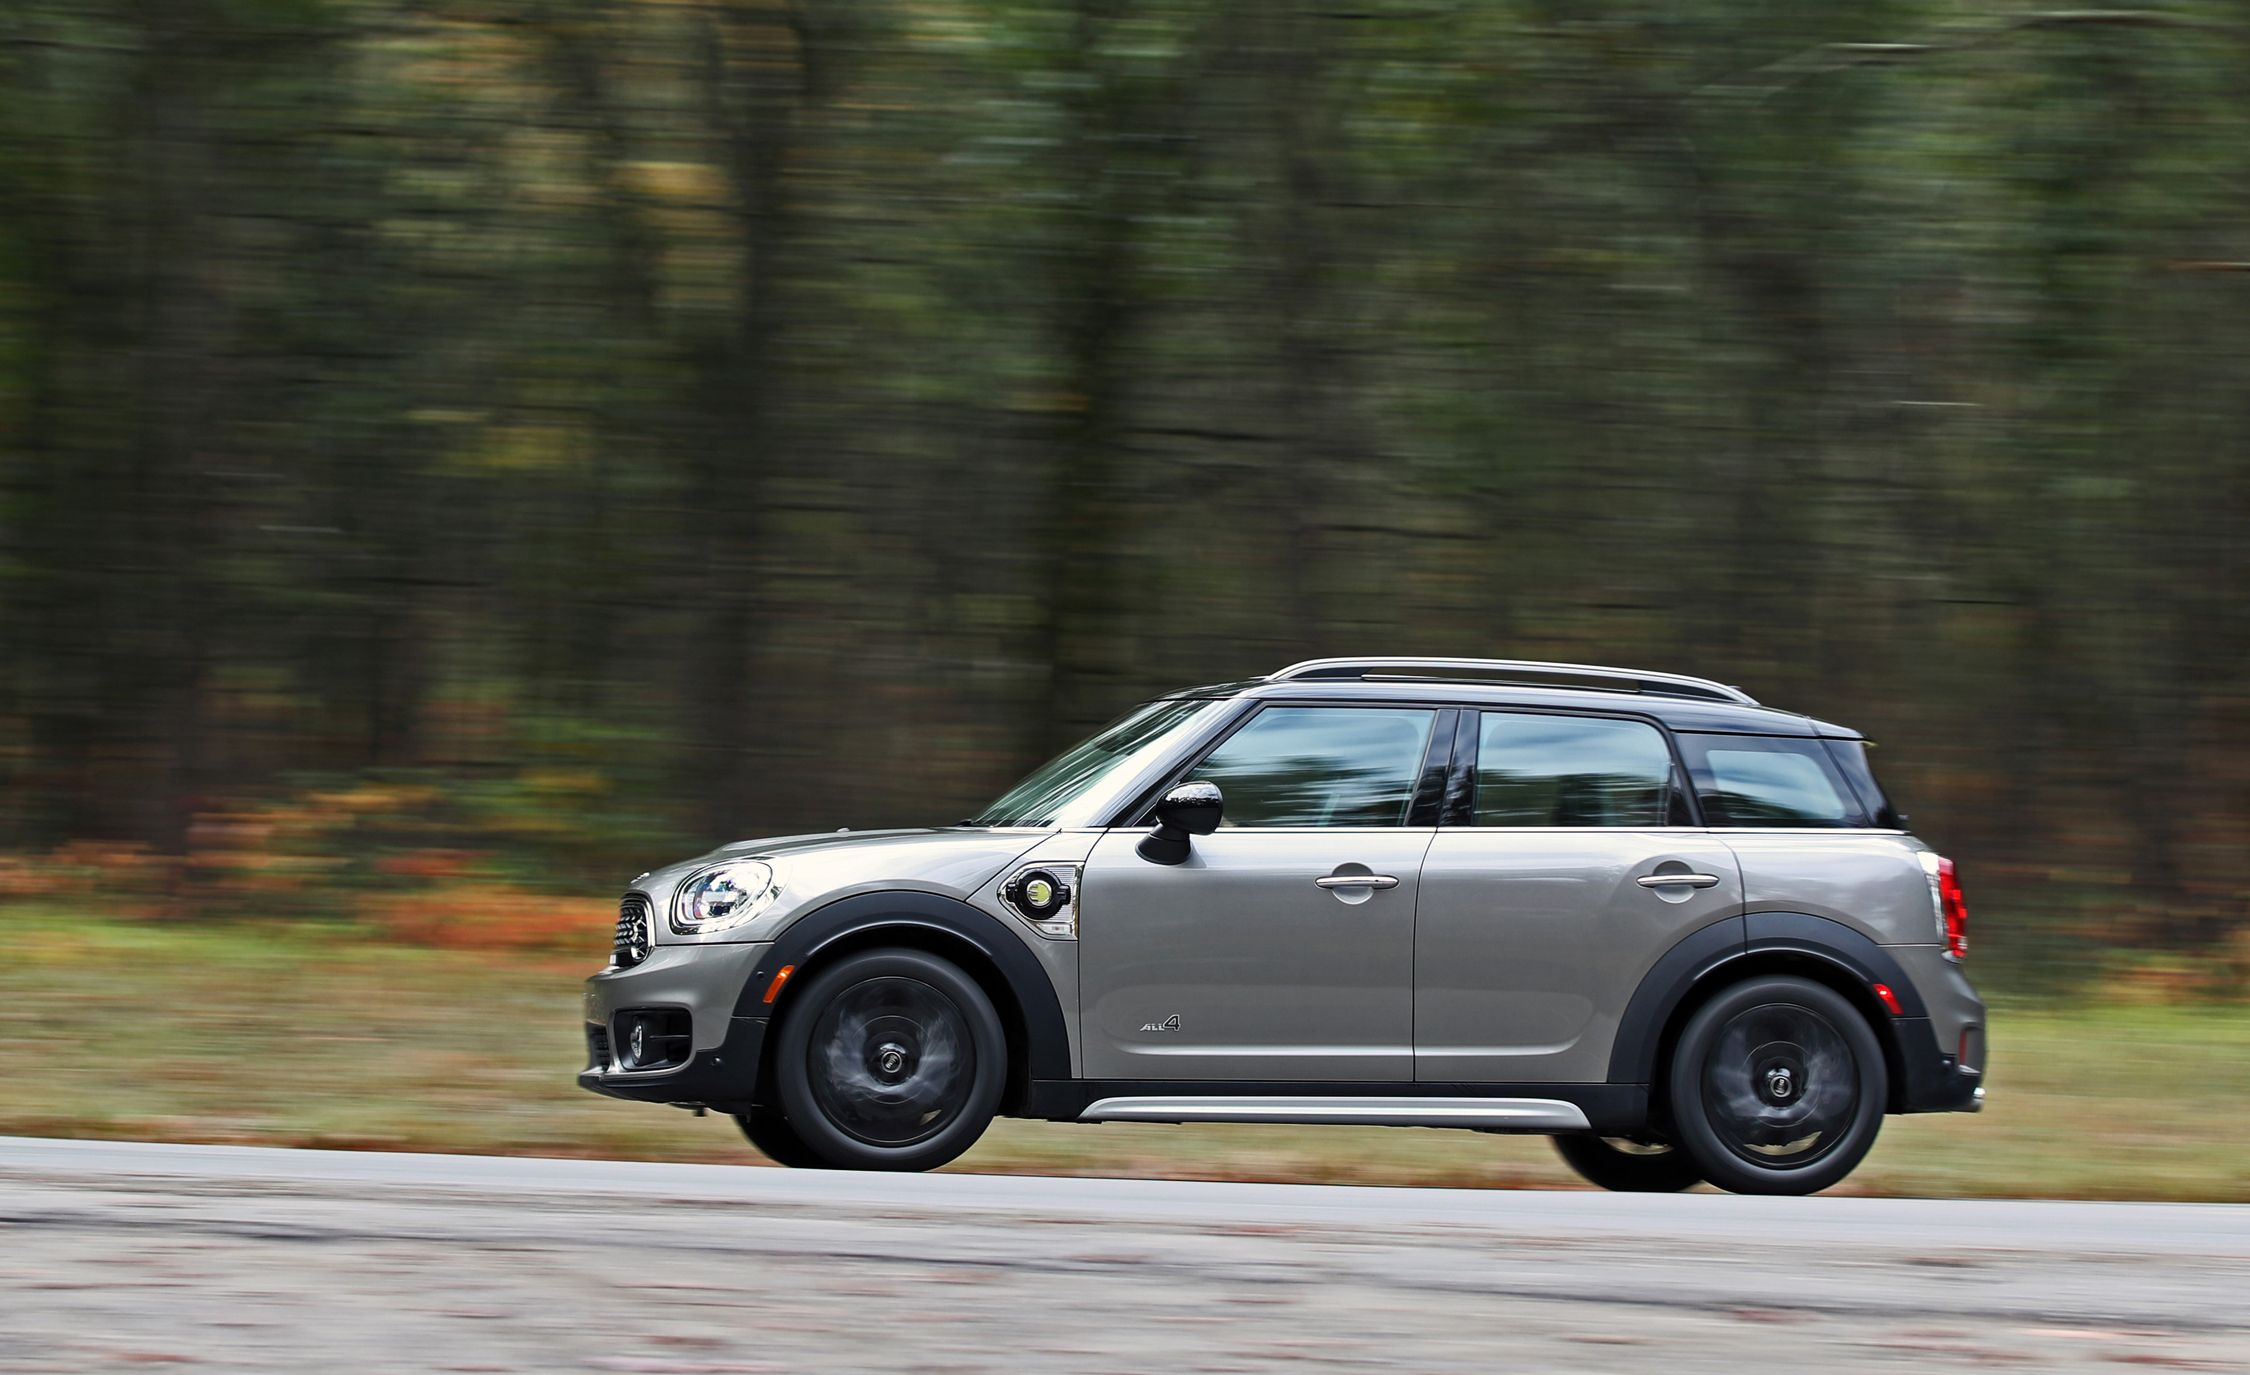 2018 Mini Cooper Countryman Safety And Driver Assistance Review Cruise Control Diagram Car